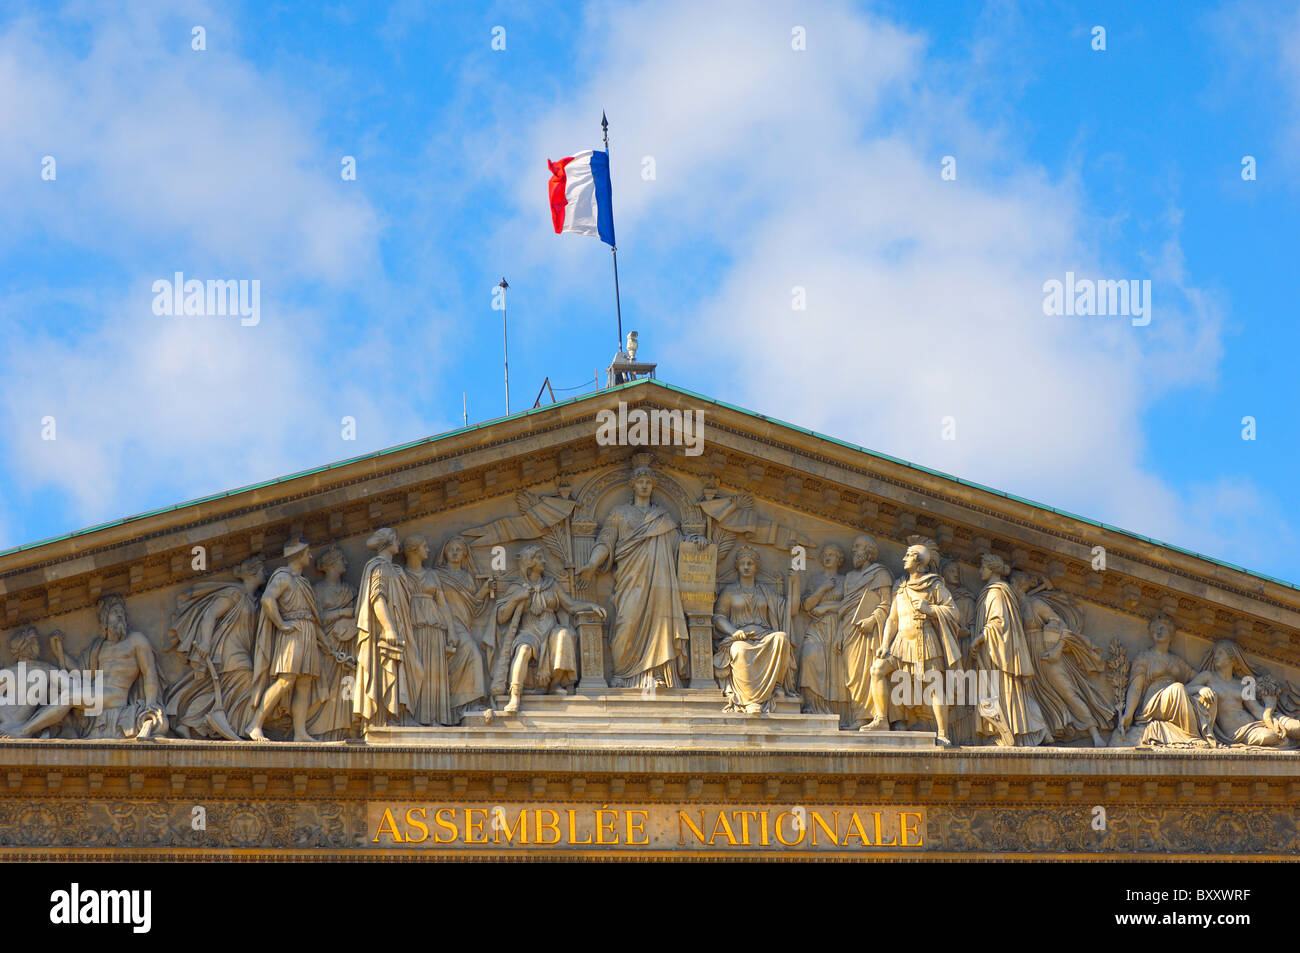 Paris - France - National Assembly - Stock Image